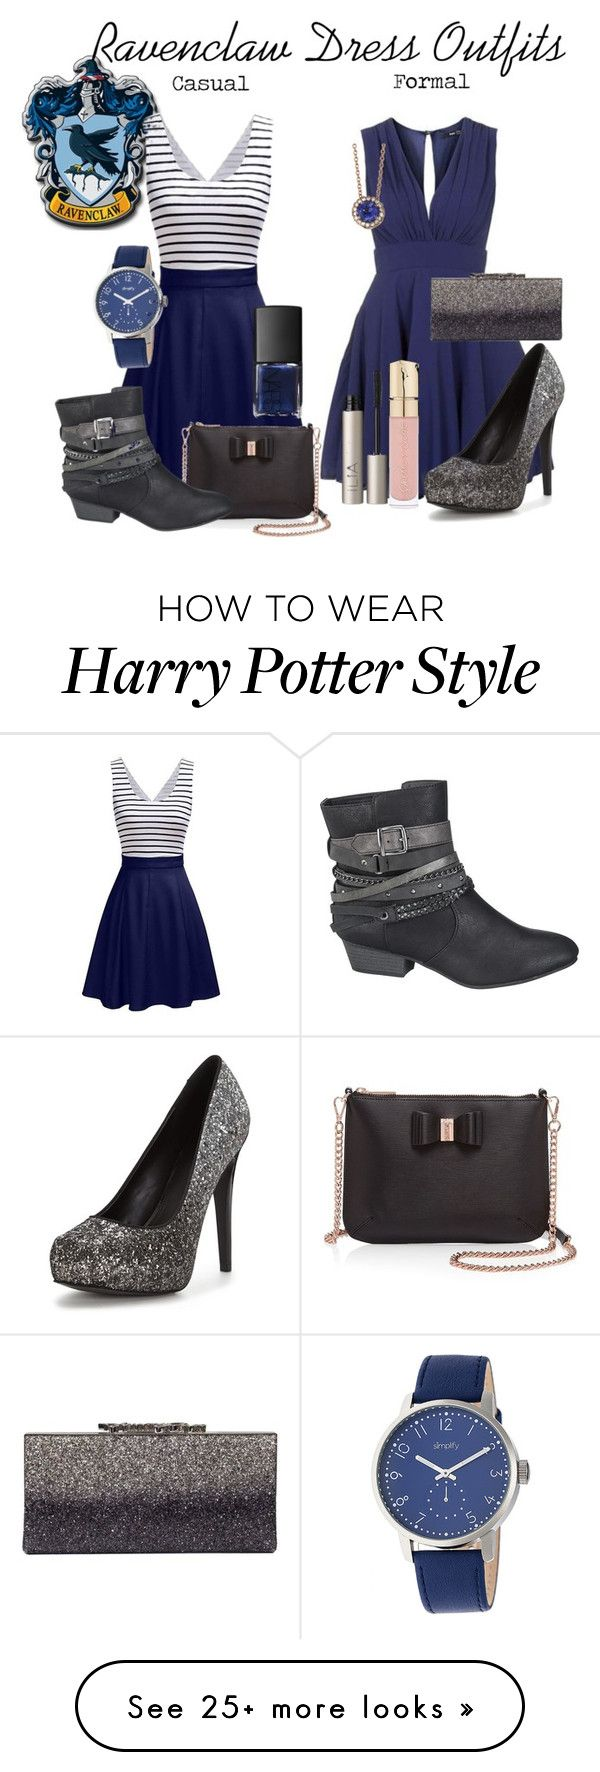 """""""Ravenclaw Inspired Dress Outfits"""" by starrydancer on Polyvore featuring TFNC, Jimmy Choo, Ted Baker, maurices, Smith & Cult, Ilia, NARS Cosmetics, Selim Mouzannar and Simplify"""